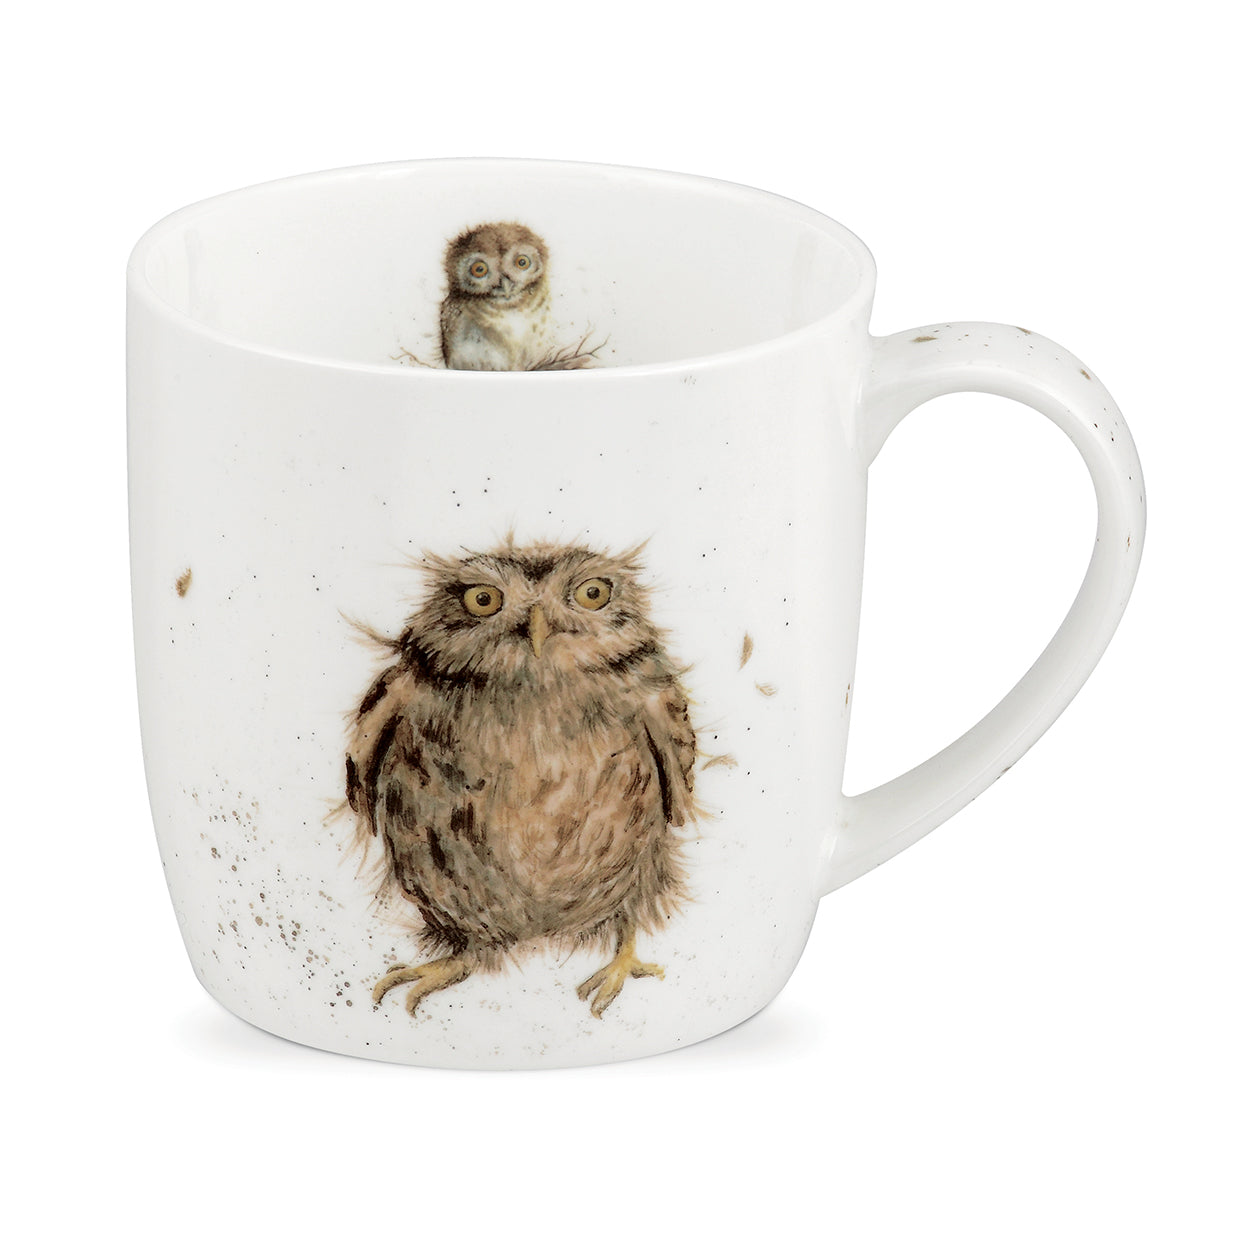 Wrendale Designs Bone China Mug - 'What a Hoot'